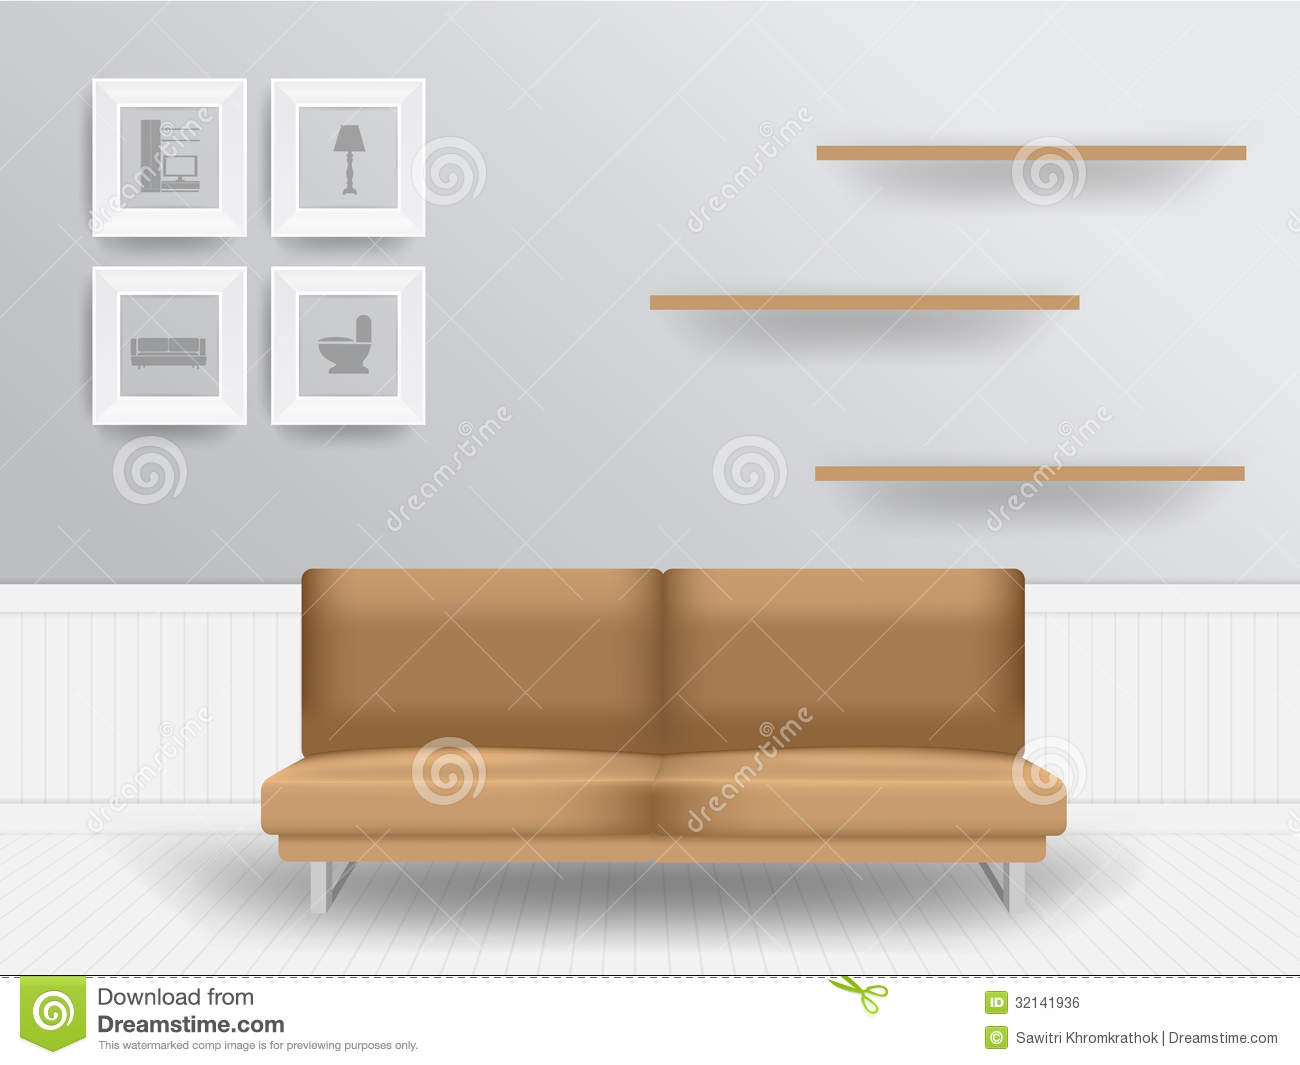 Vector living room interior concept royalty free stock for Interior design images vector